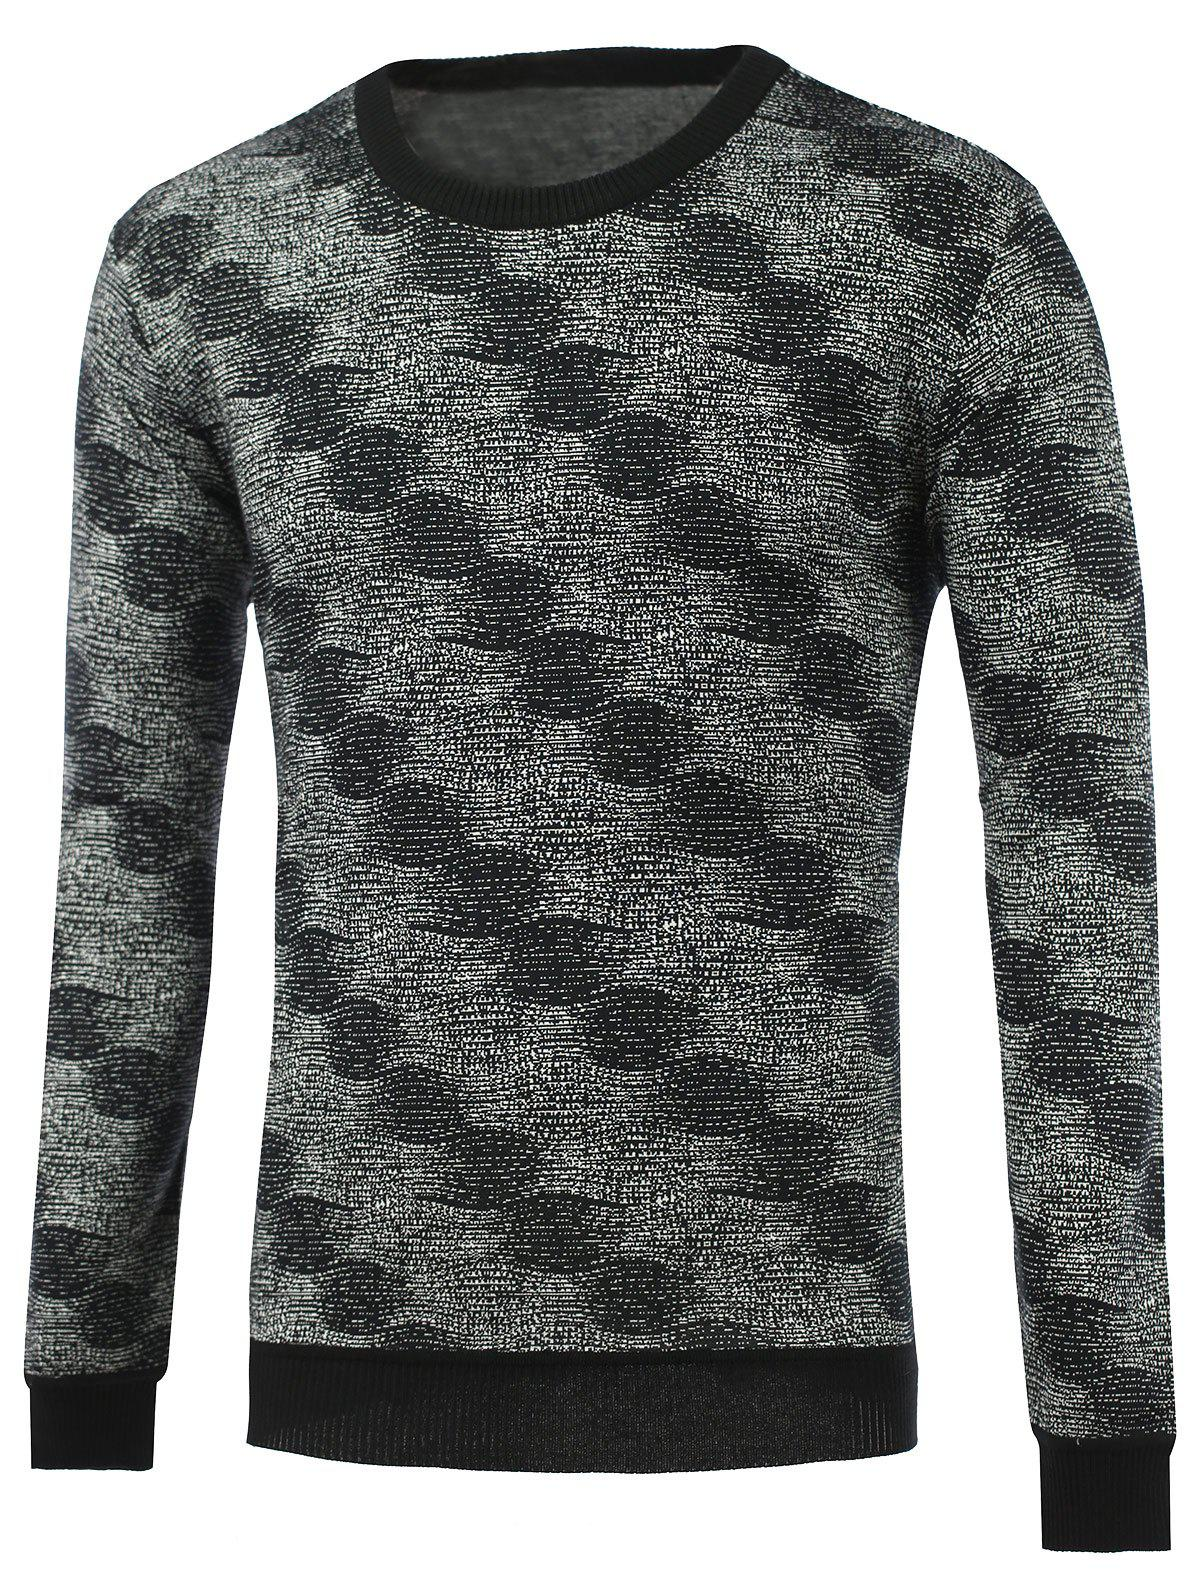 Crew Neck Rib-Hem Heathered Graphic Knitwear - BLACK L